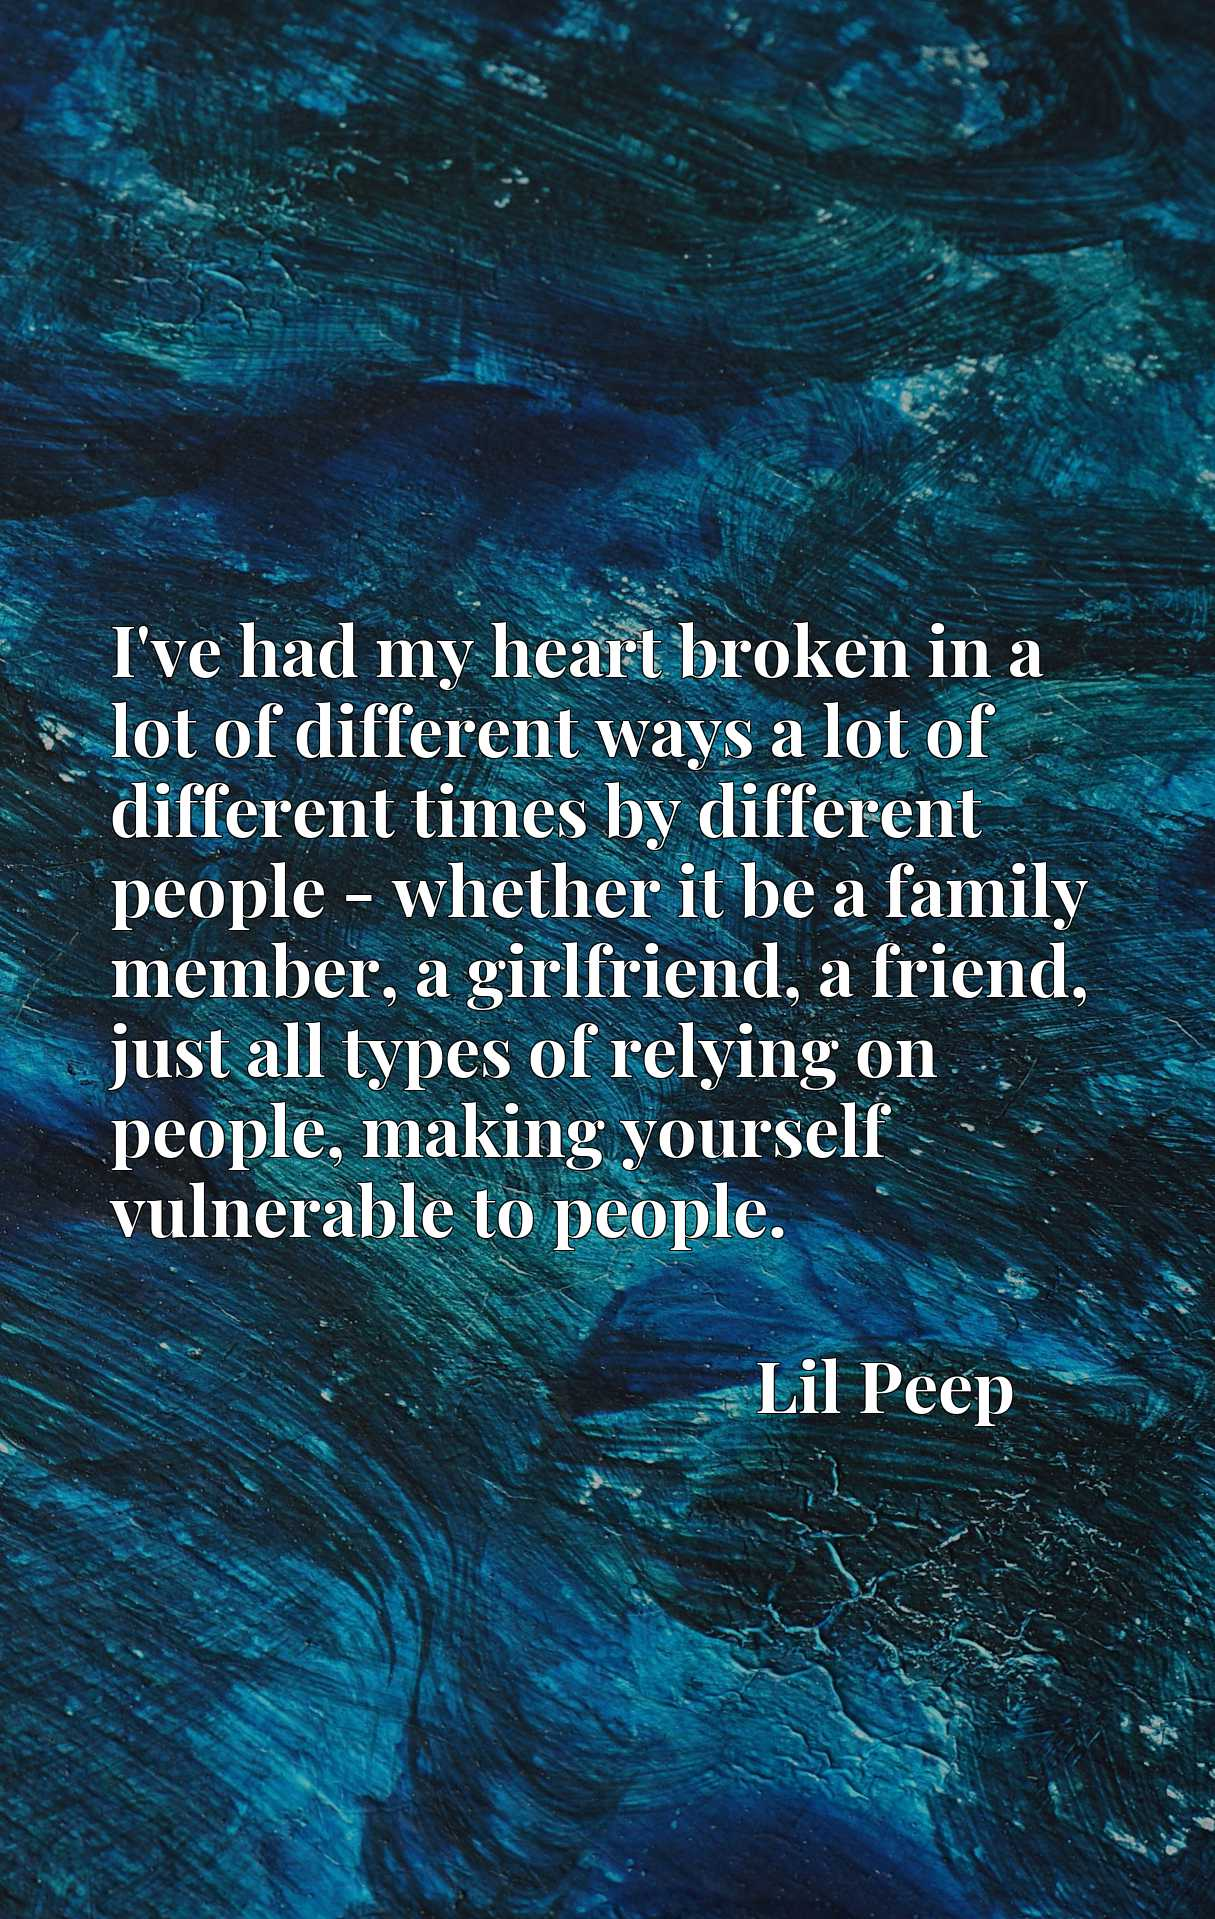 I've had my heart broken in a lot of different ways a lot of different times by different people - whether it be a family member, a girlfriend, a friend, just all types of relying on people, making yourself vulnerable to people.